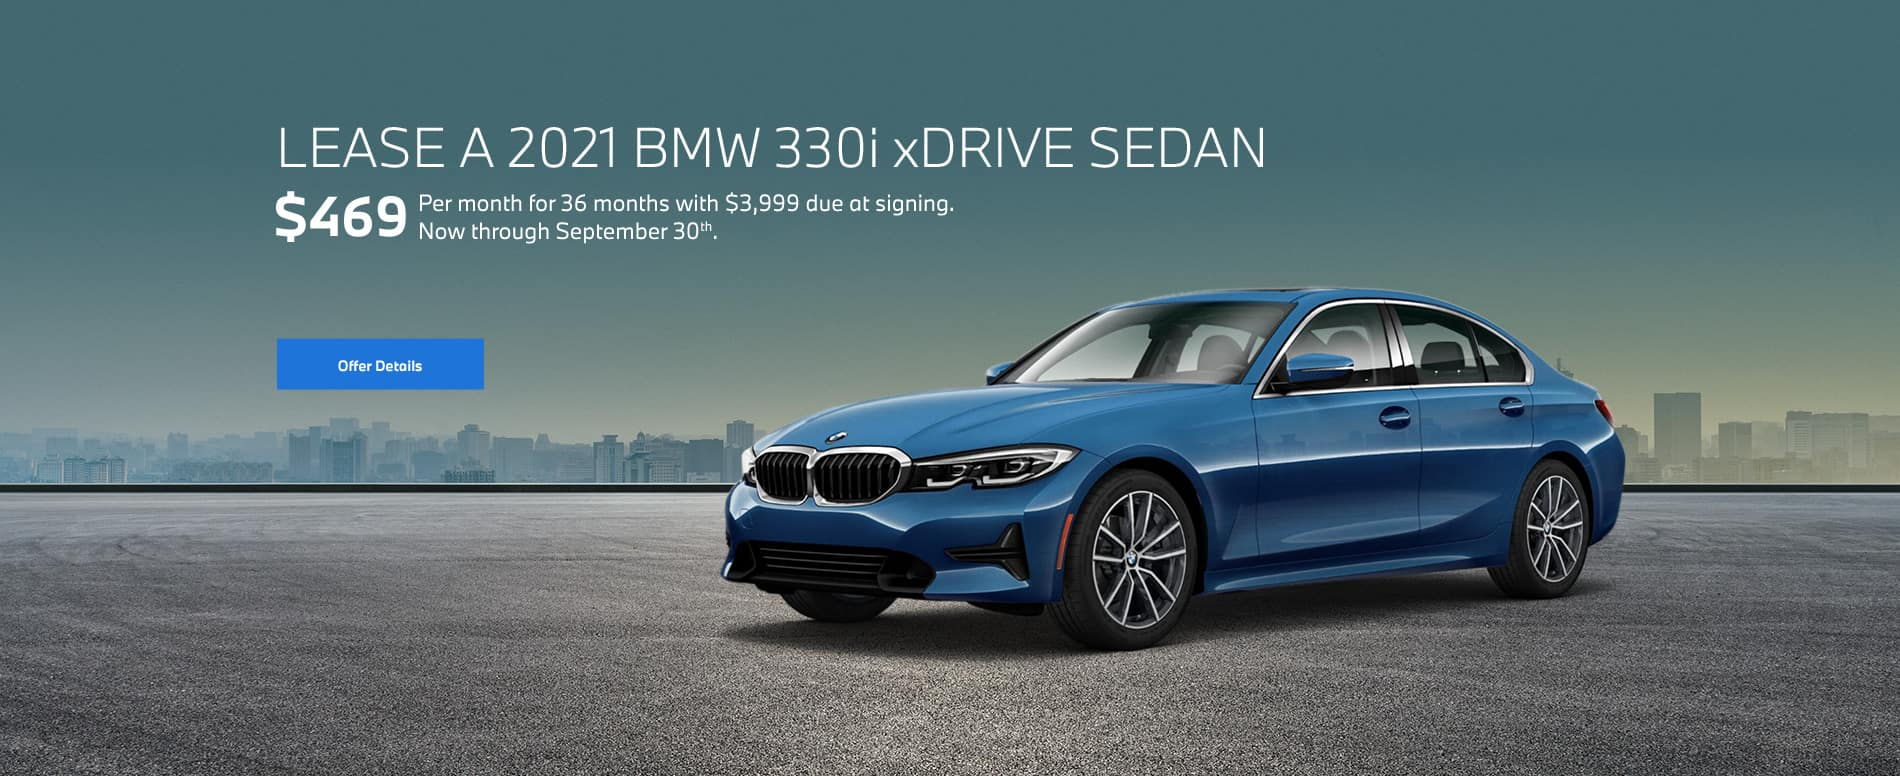 Lease a 2021 BMW 330i xDrive Sedan for $469/month for 36 months ($3,999 due at signing now through September 30th).